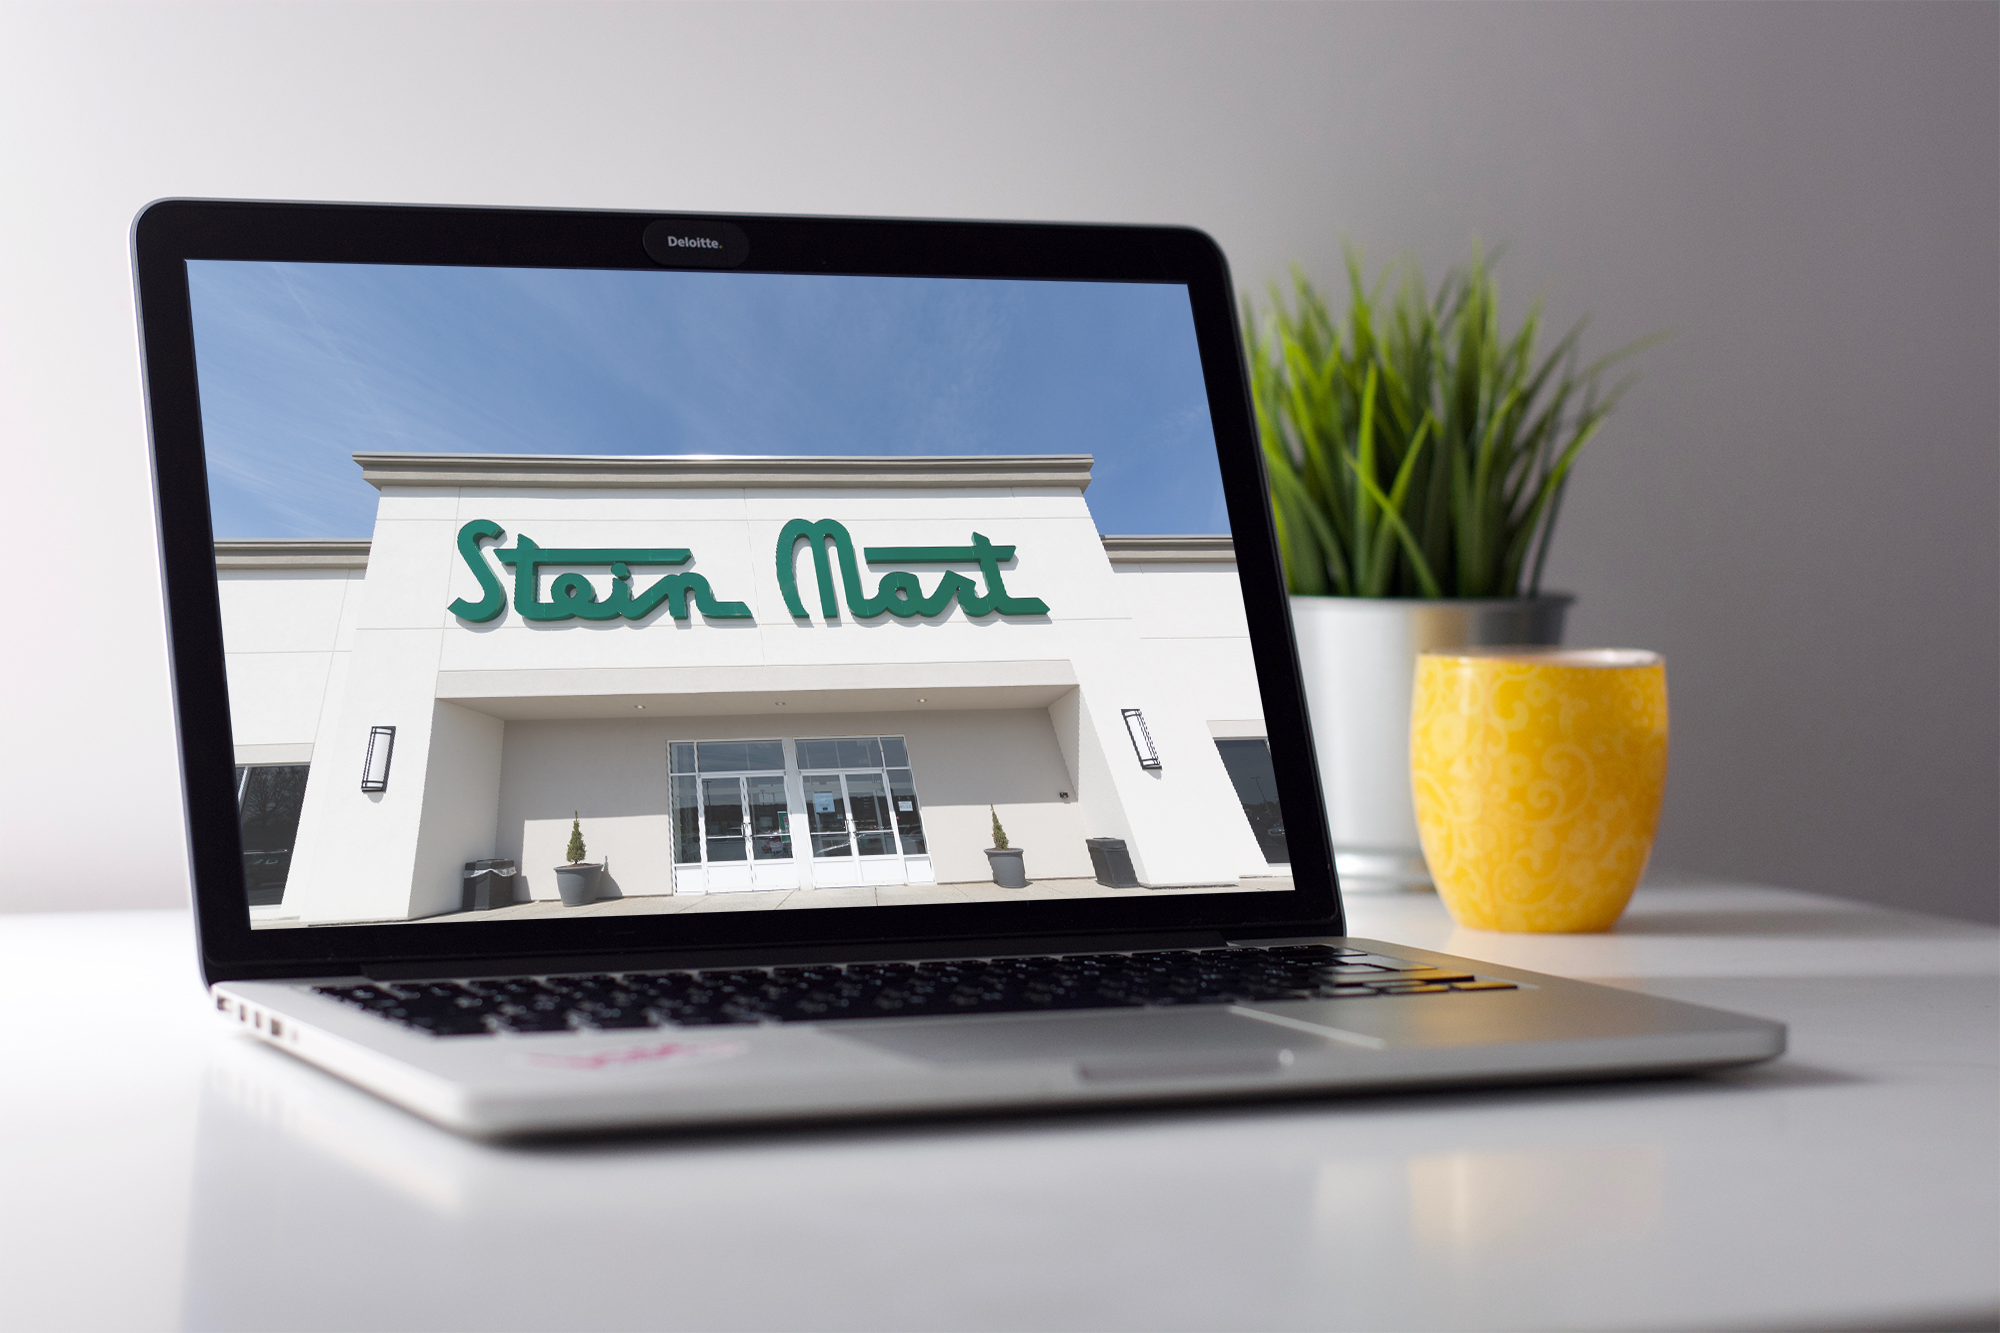 Selling Online On Stien Mart